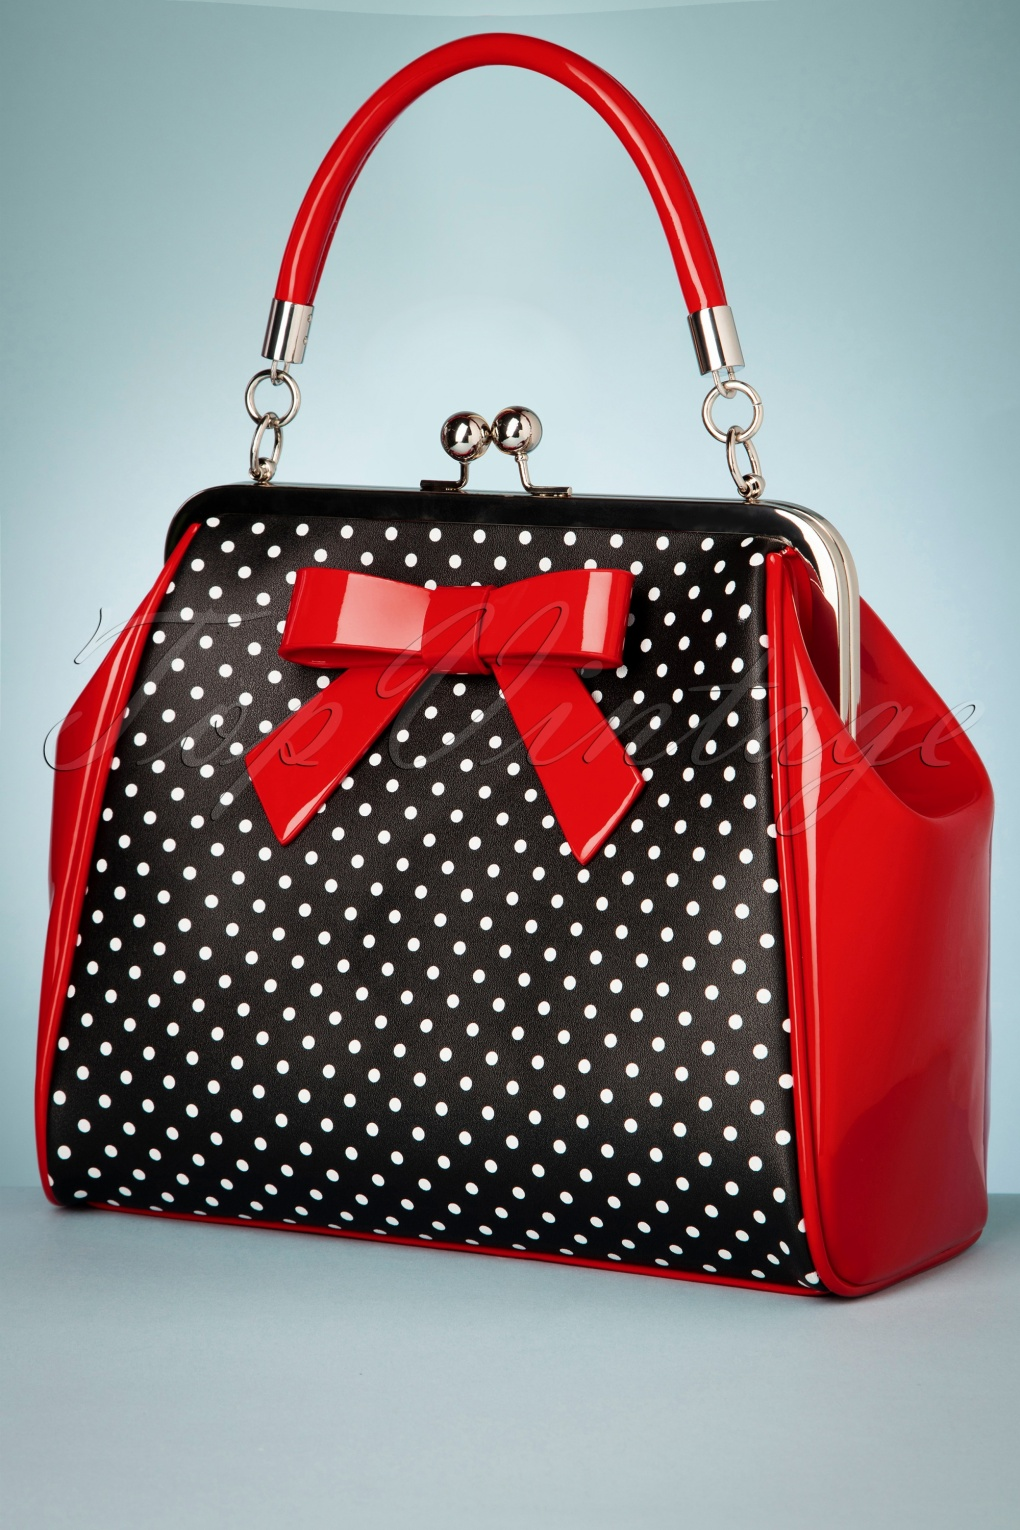 1950s Handbags, Purses, and Evening Bag Styles 50s Frances Polka Star Bag in Black and Red £38.91 AT vintagedancer.com